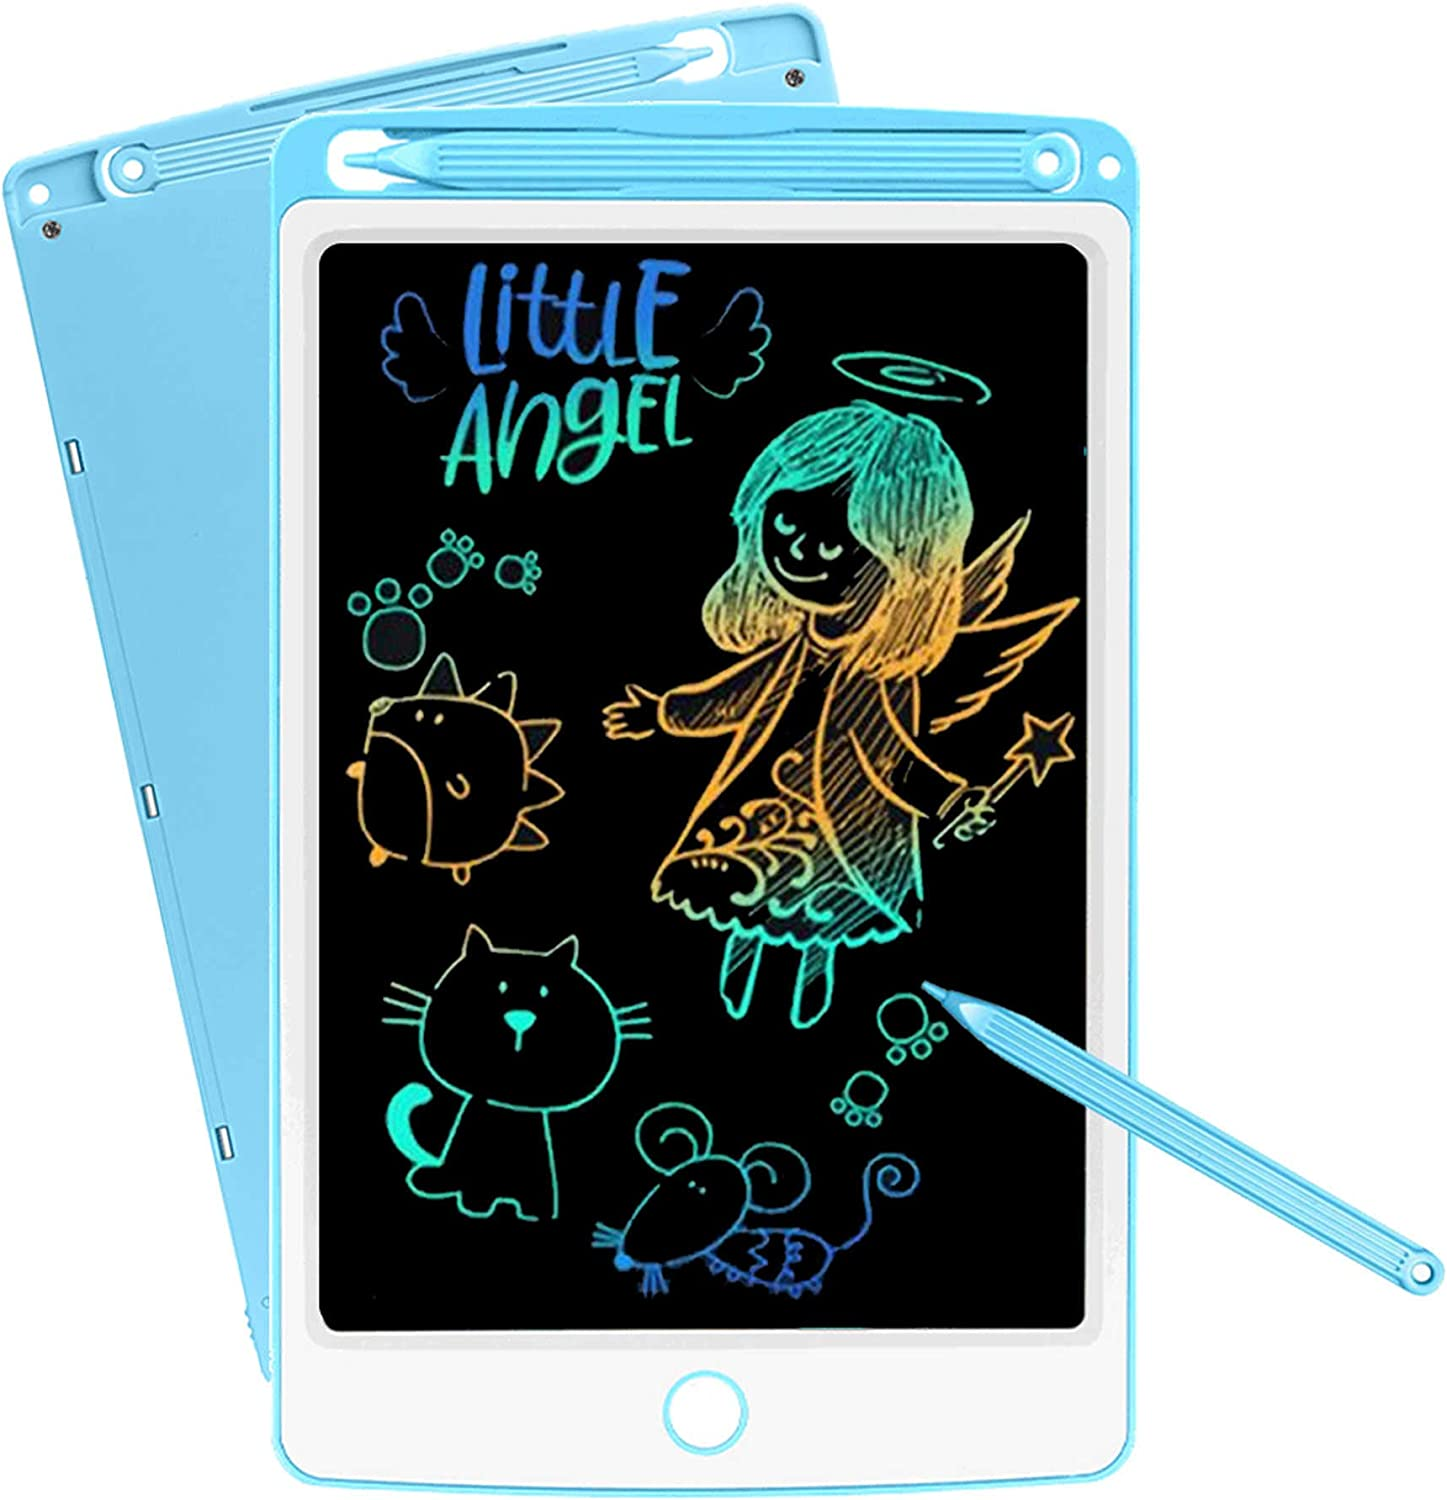 NOBES LCD Drawing Tablet for Kids Colorful Screen, Writing Tablet 10-Inch Erasable Electronic Digital Drawing Pad Doodle Board, Gift for Kids Adults Home School Office (Blue)